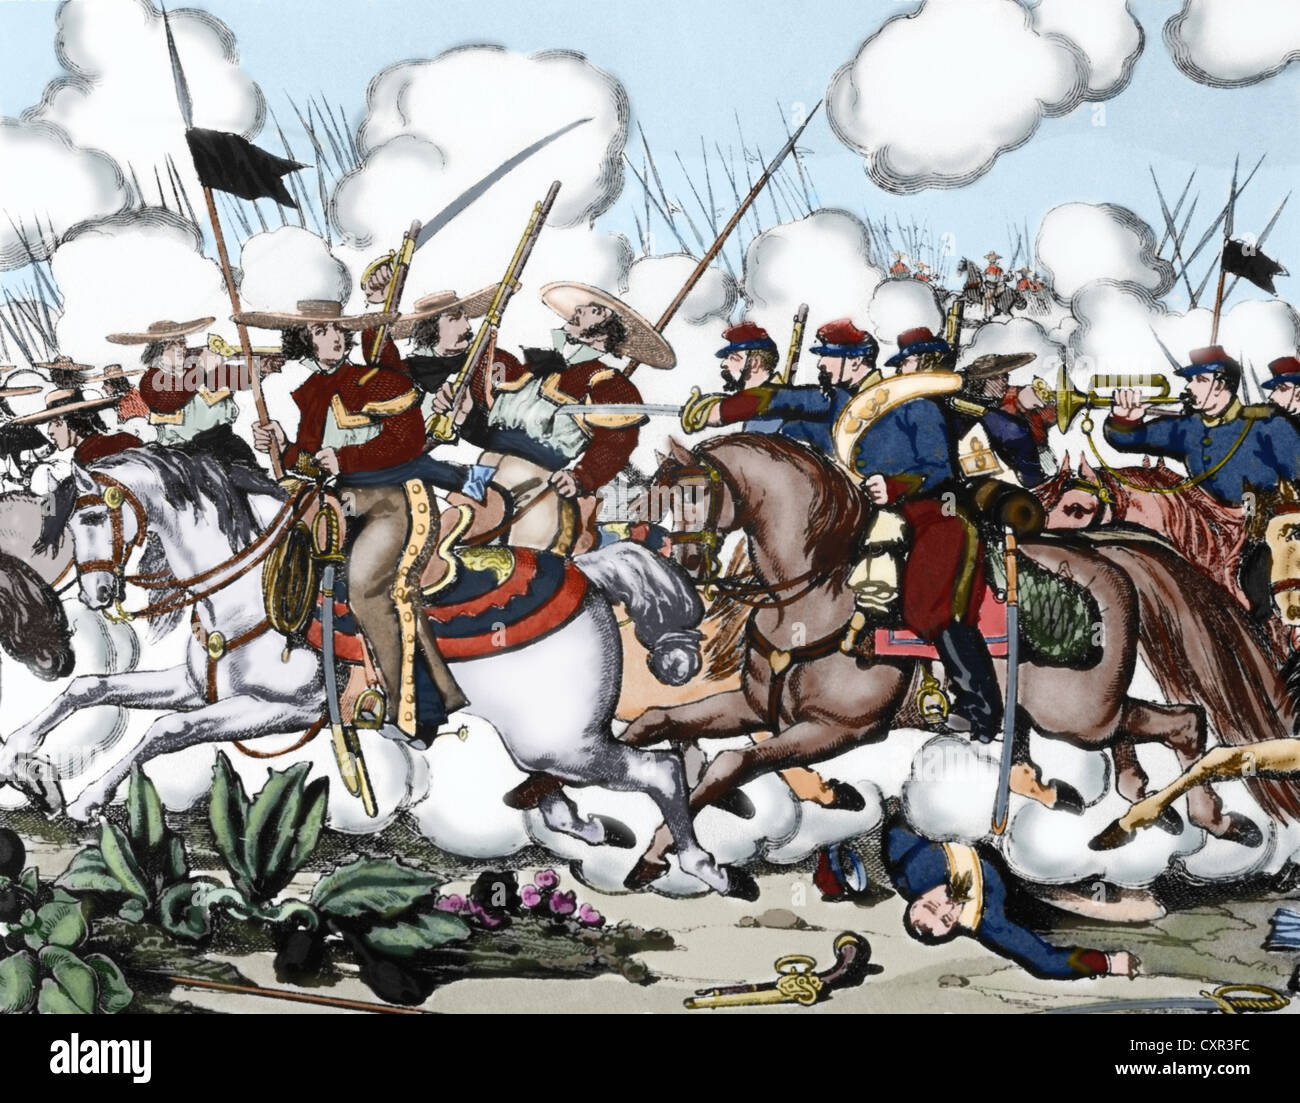 French Intervention in Mexico. Siege of Jonuta (February 21, 1863). French troops invading the territory of Tabasco. - Stock Image